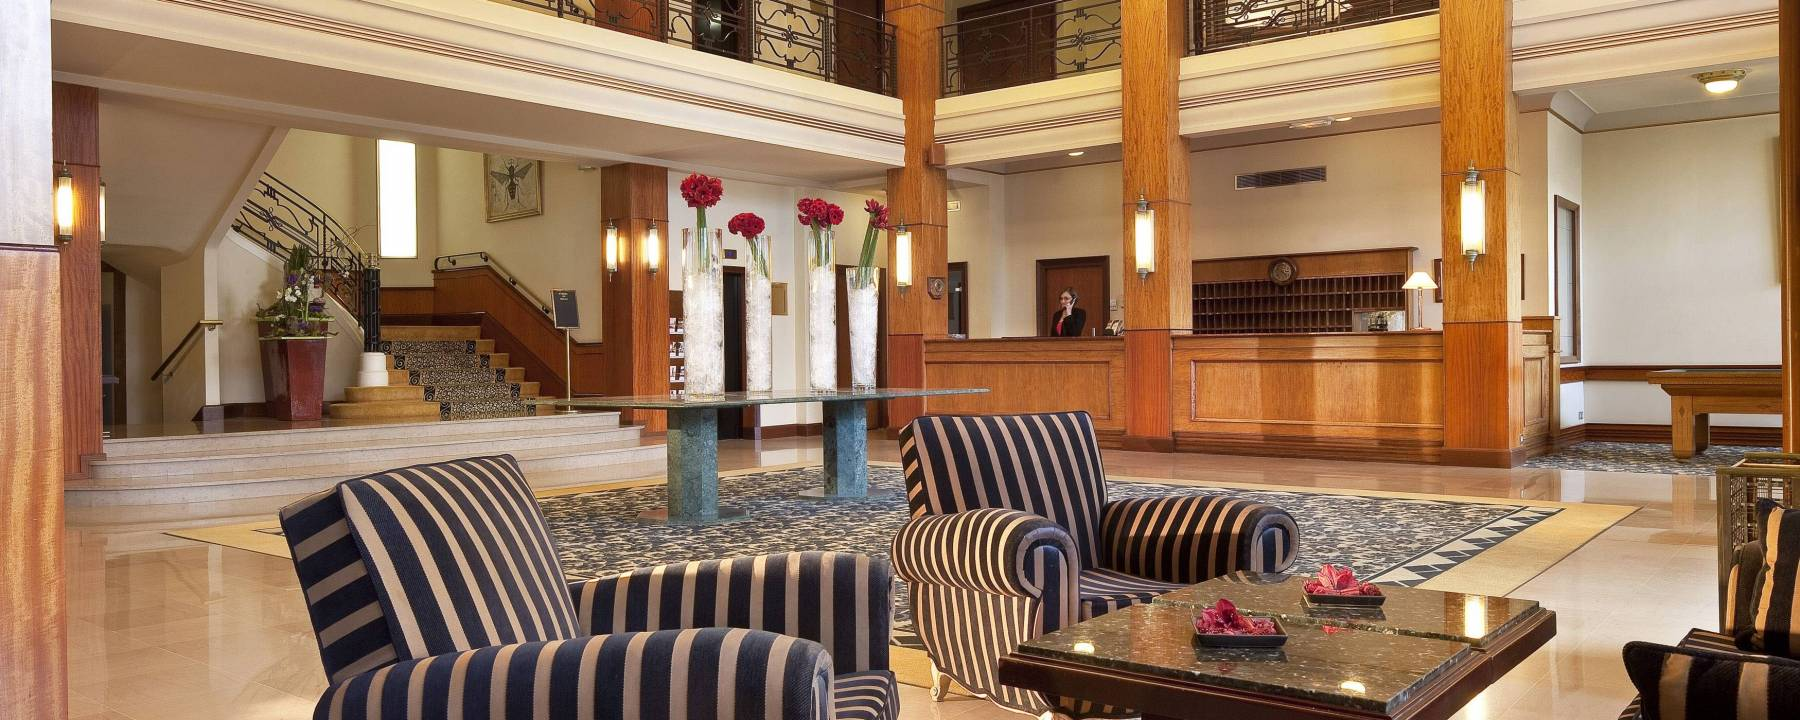 Hotel Le Continental Brest Brest